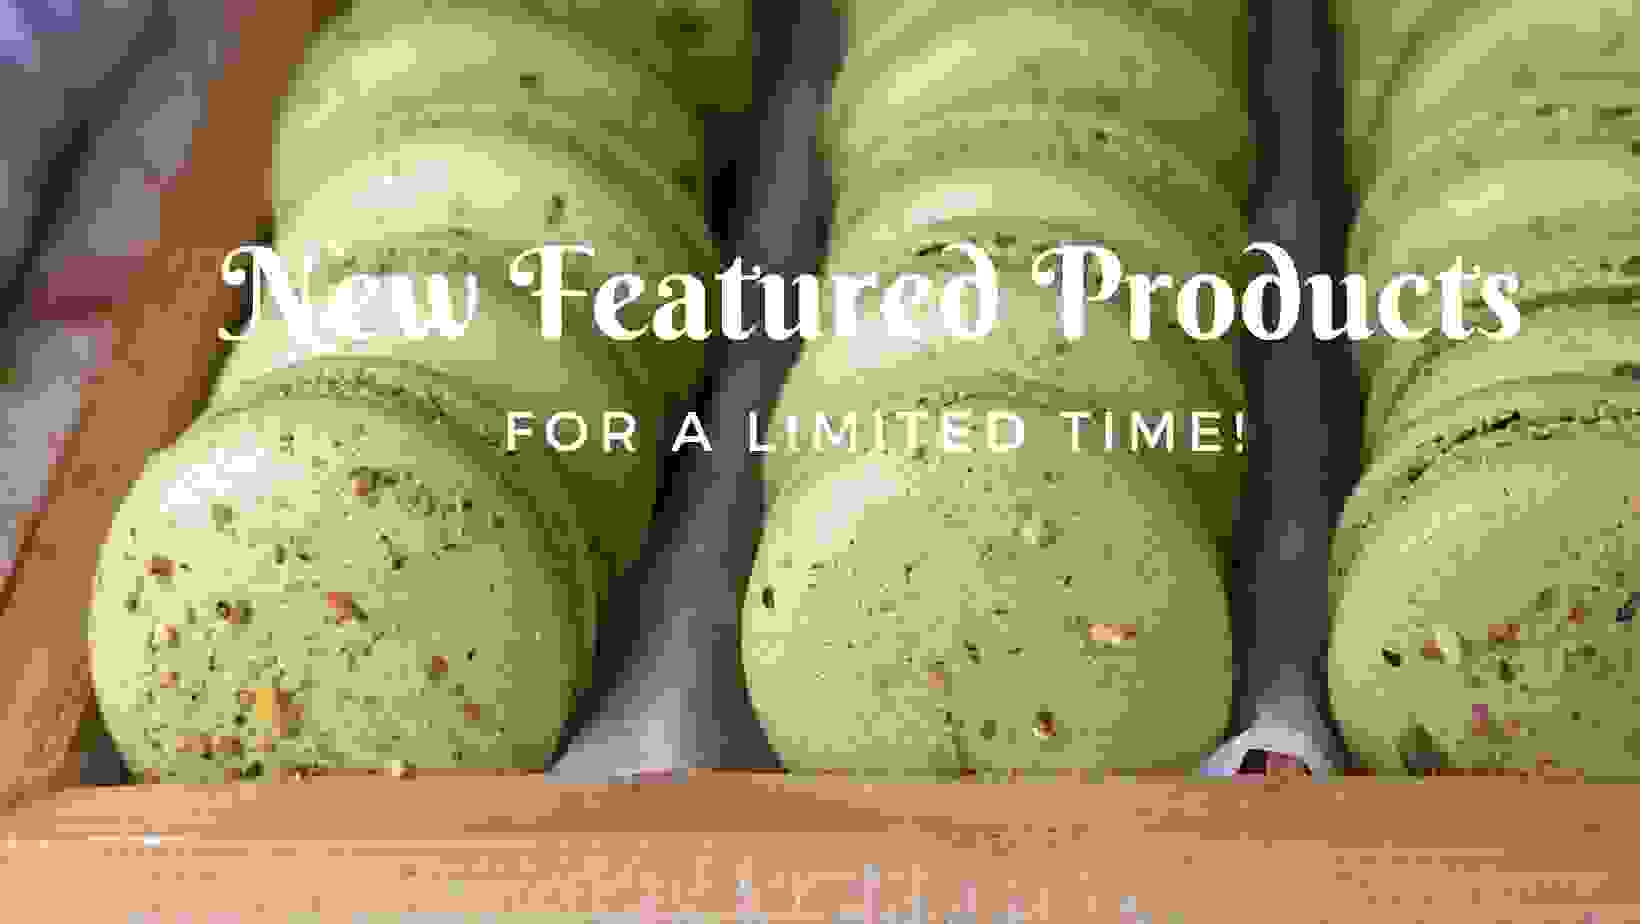 Matcha Macarons with Pistachio by Rosemary Honey Designs & Bakes Charlotte NC